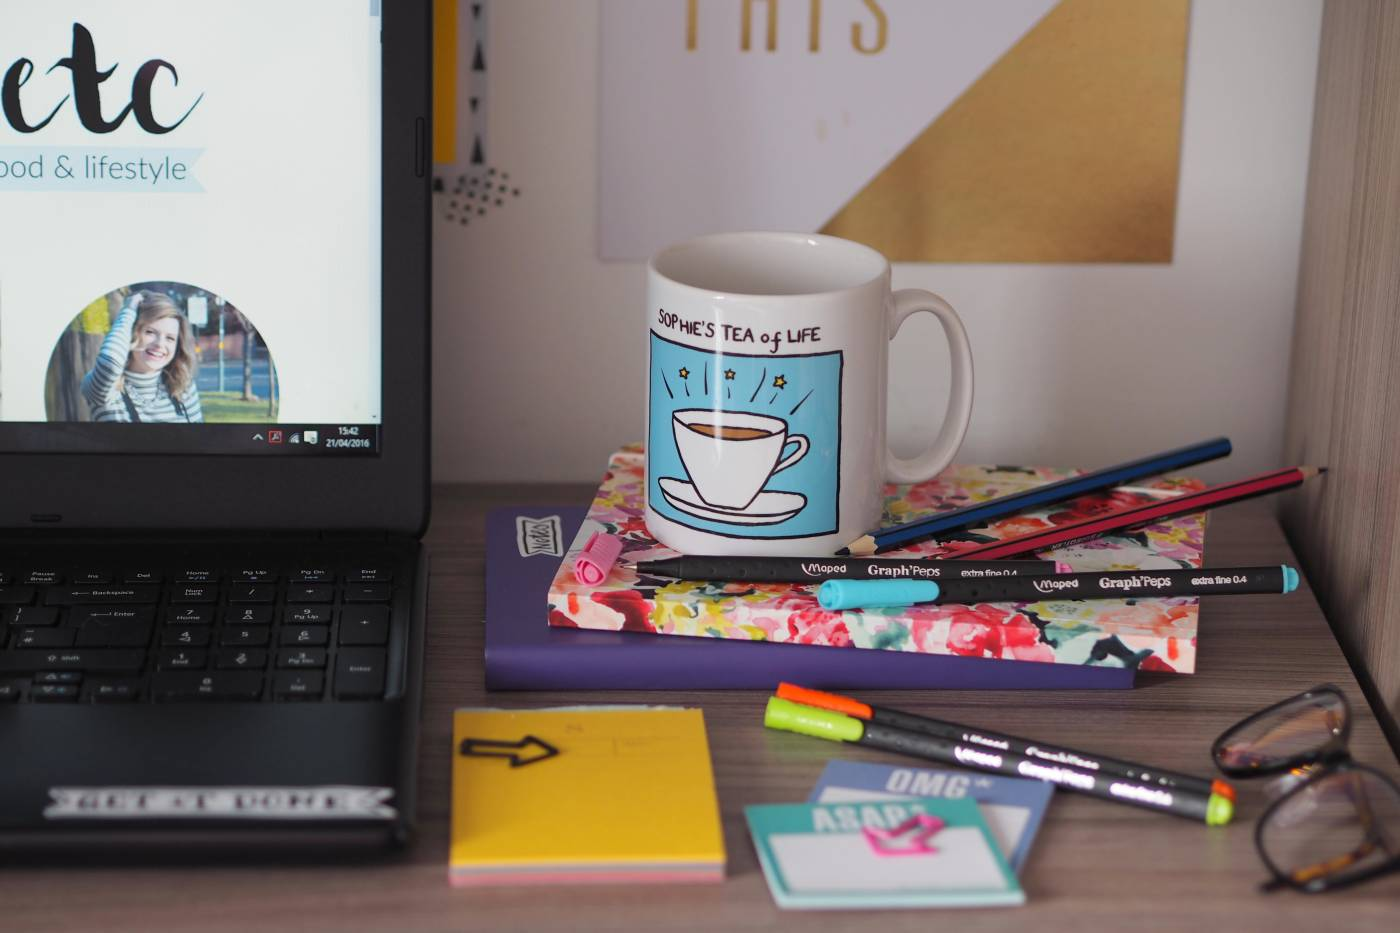 New In: Ready for National Stationery Week!